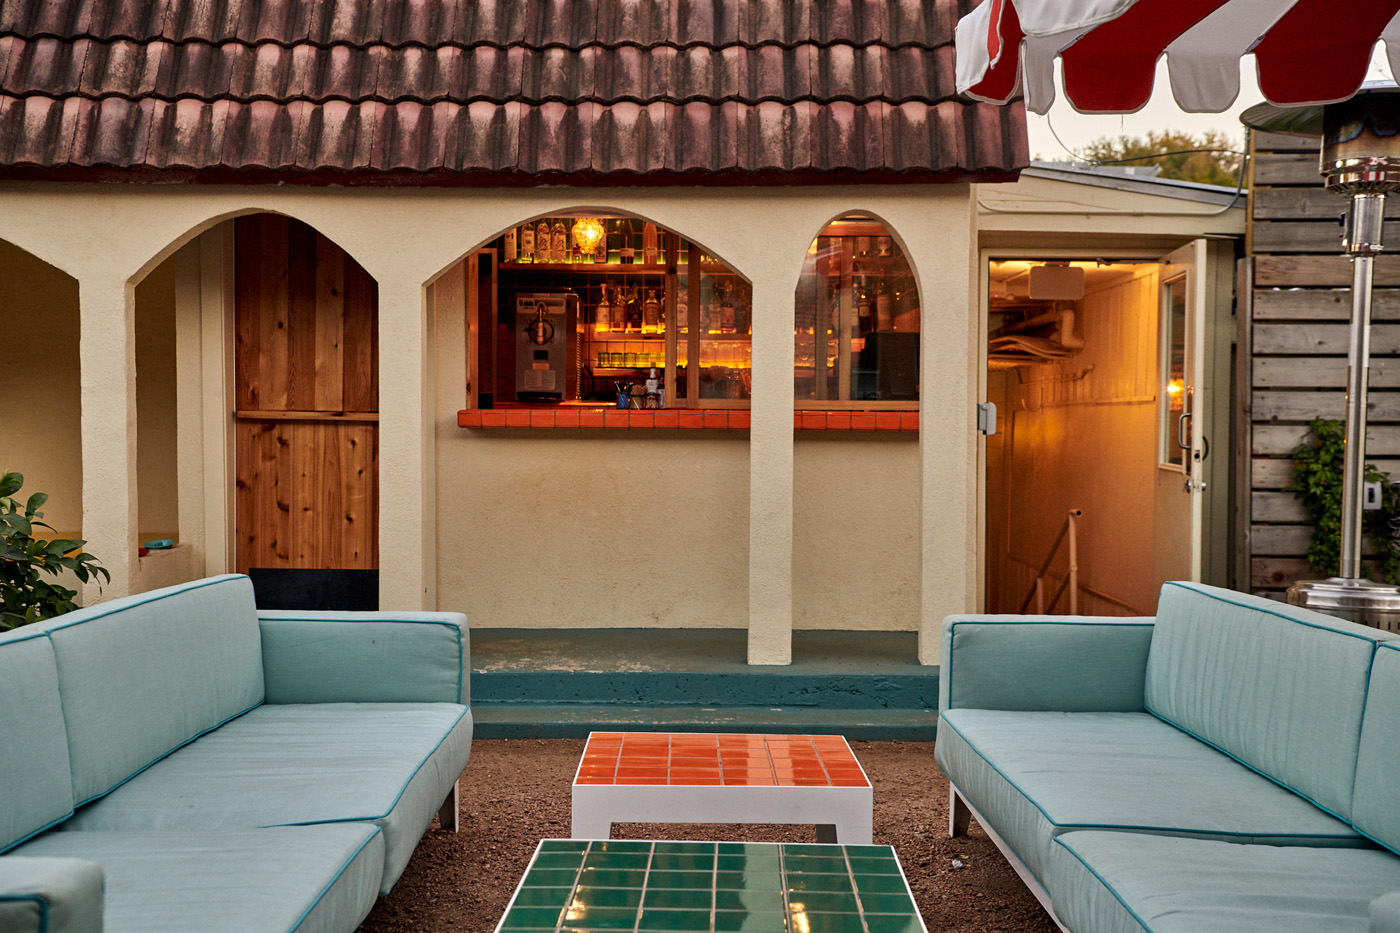 Outdoor lounging area and bar at the Austin Motel